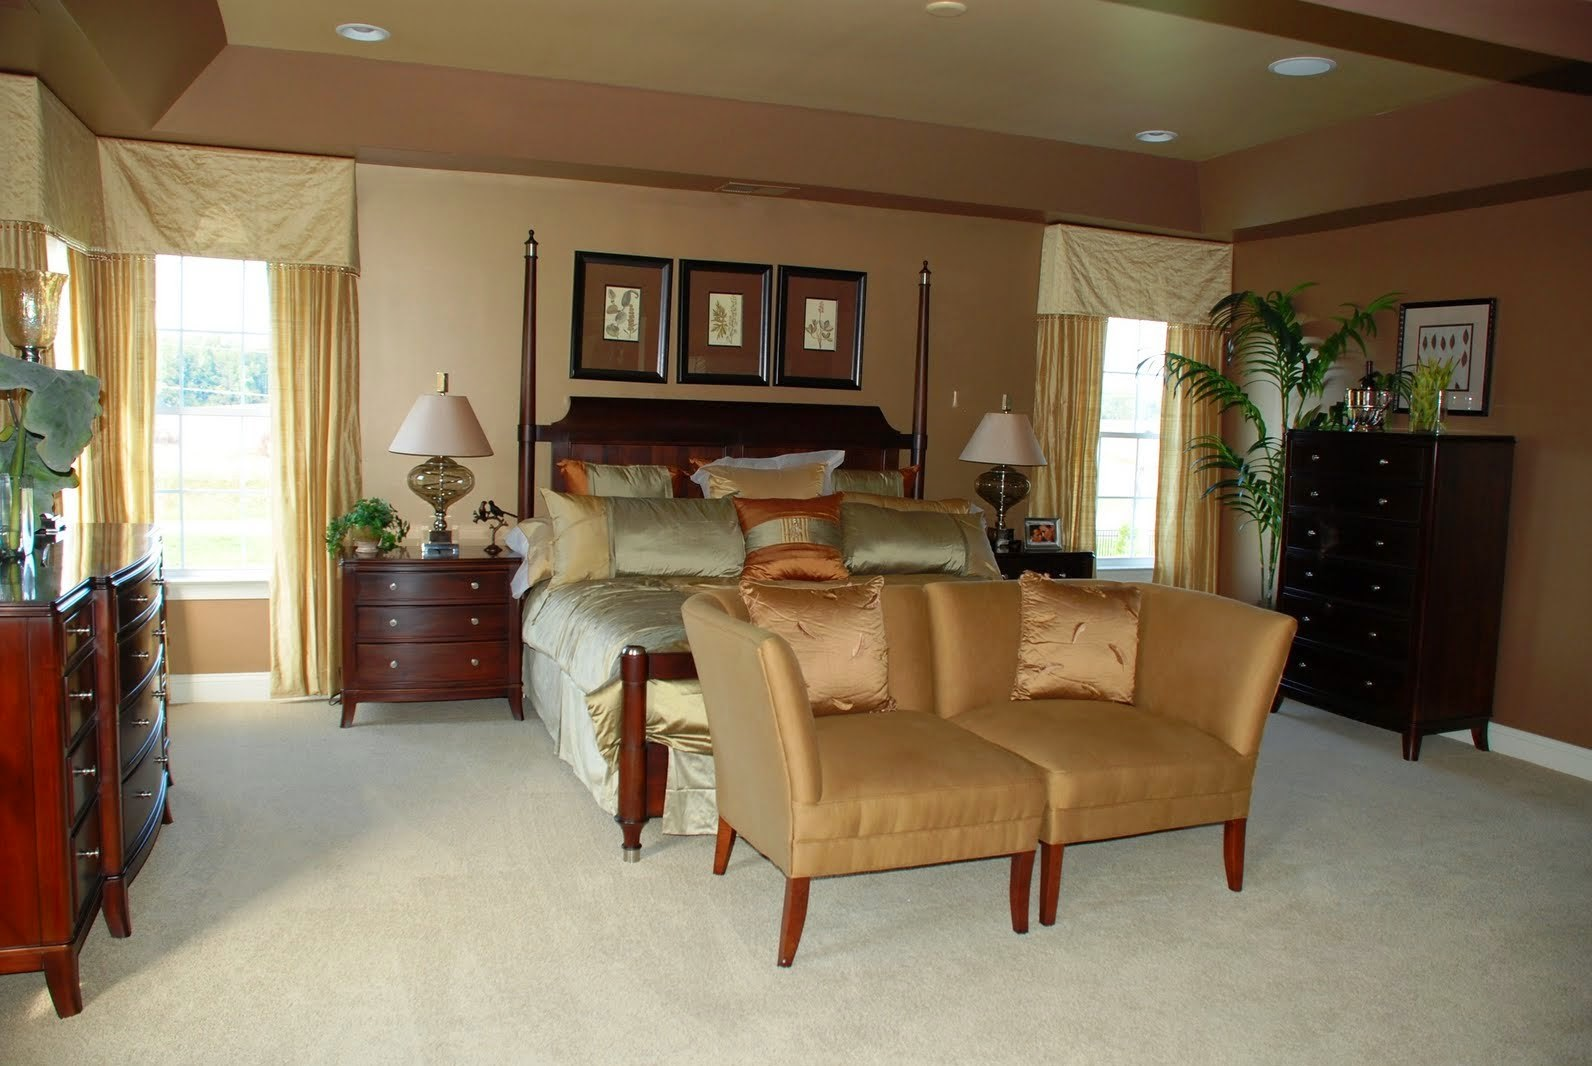 Bedroom Paint Ideas With Cherry Furniture Bedroom Paint Ideas Patterns Stripes And